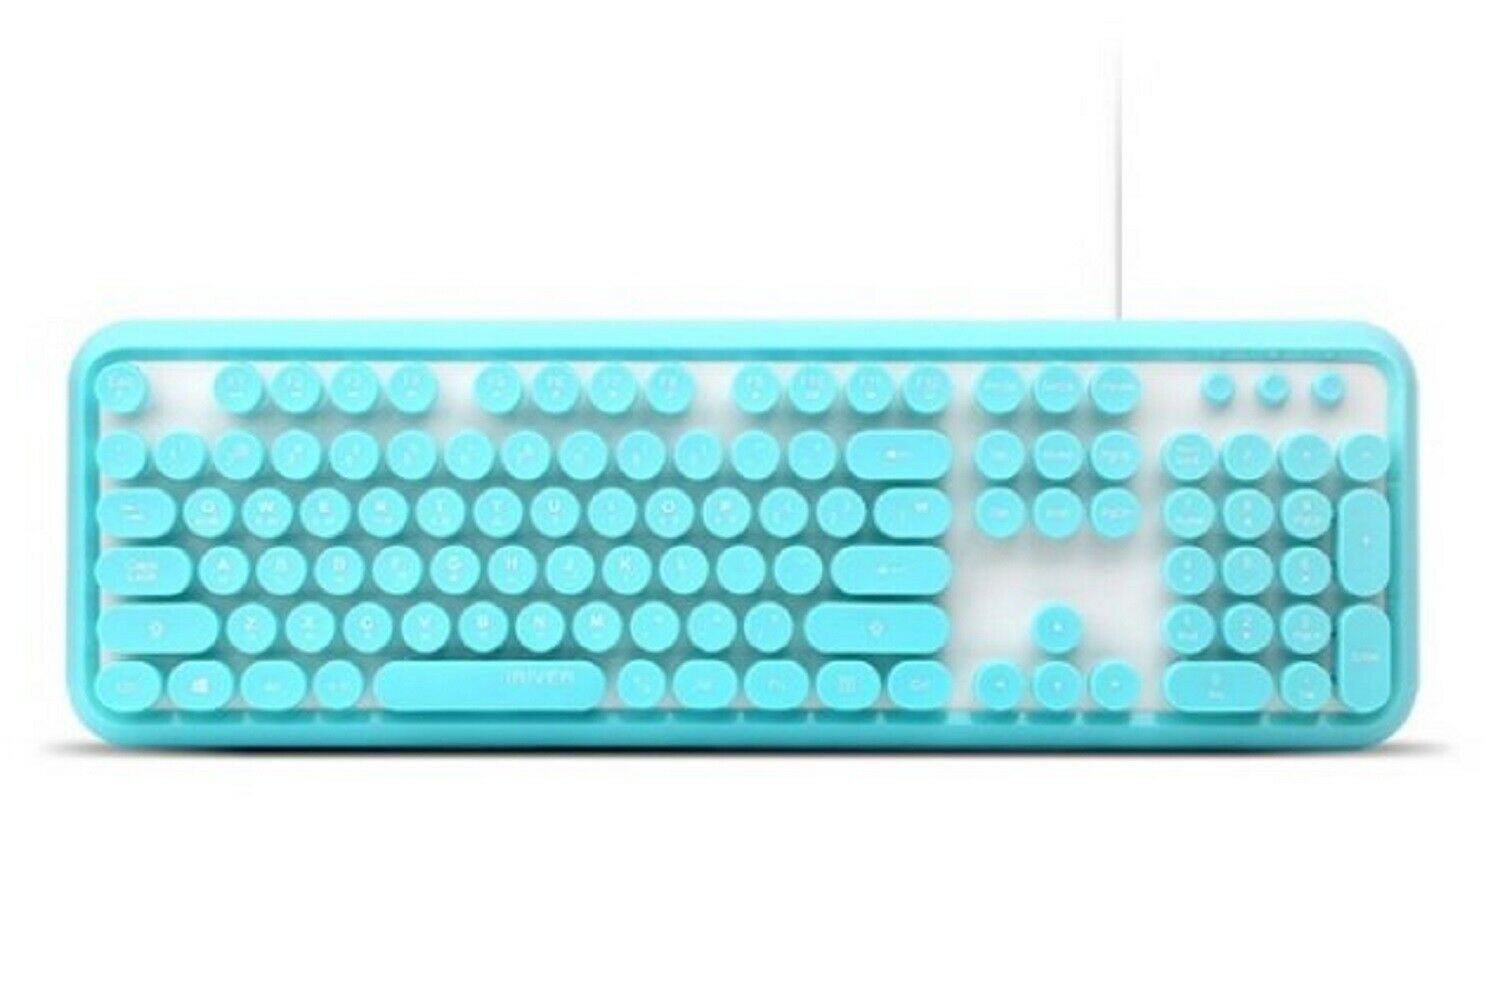 iRiver Korean English Keyboard USB Wired Membrane Bubble Keyboard for PC (Blue)